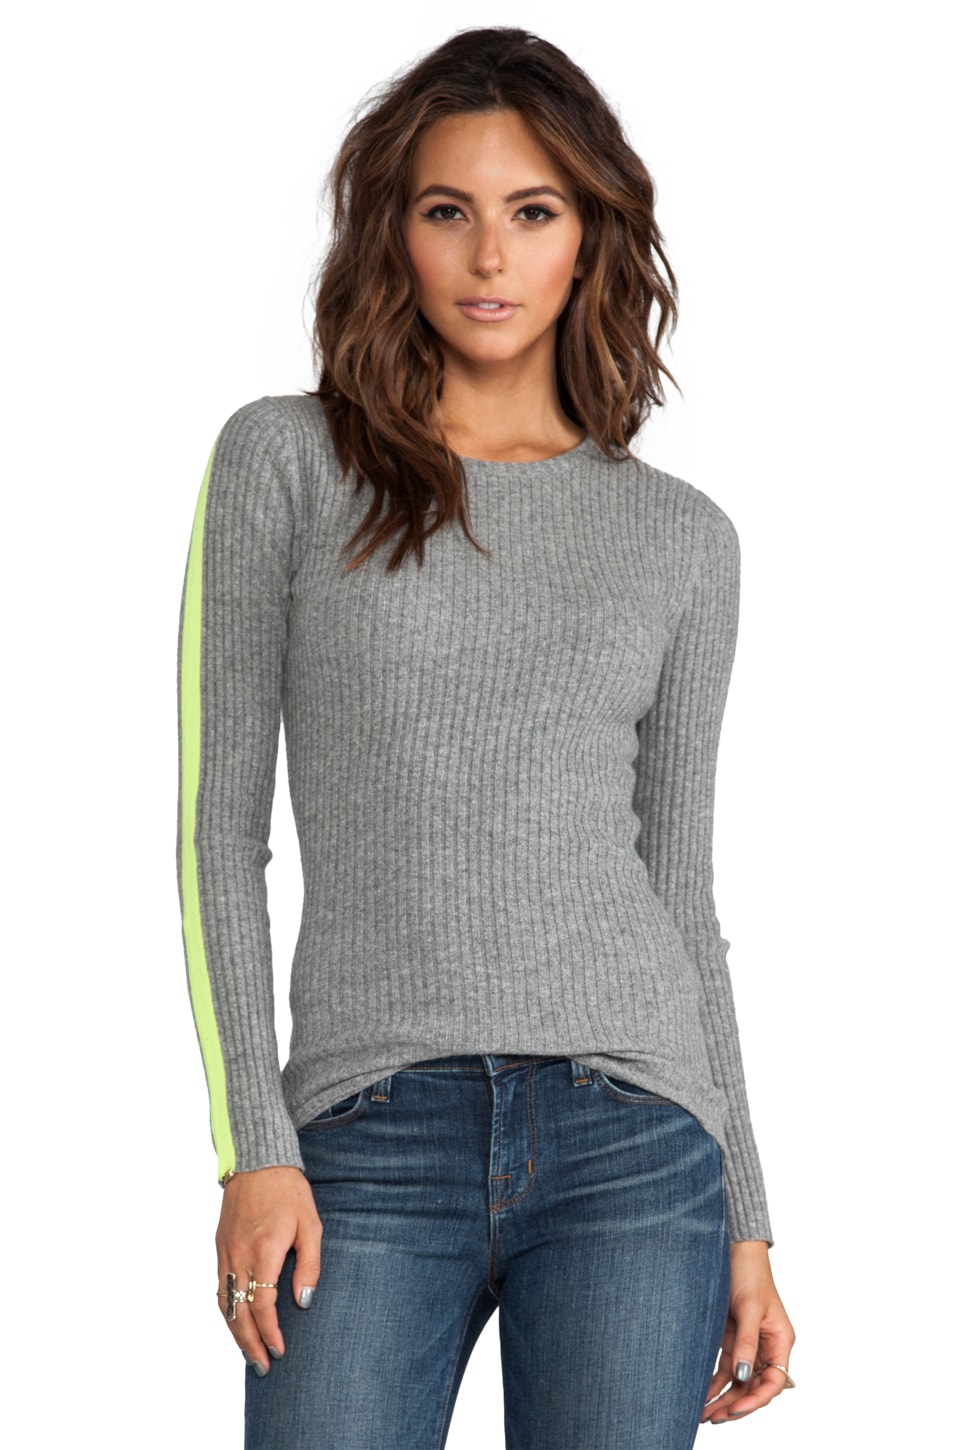 Autumn Cashmere Ribbed Crew With Athletic Racing Stripes in Cement/Day Glow